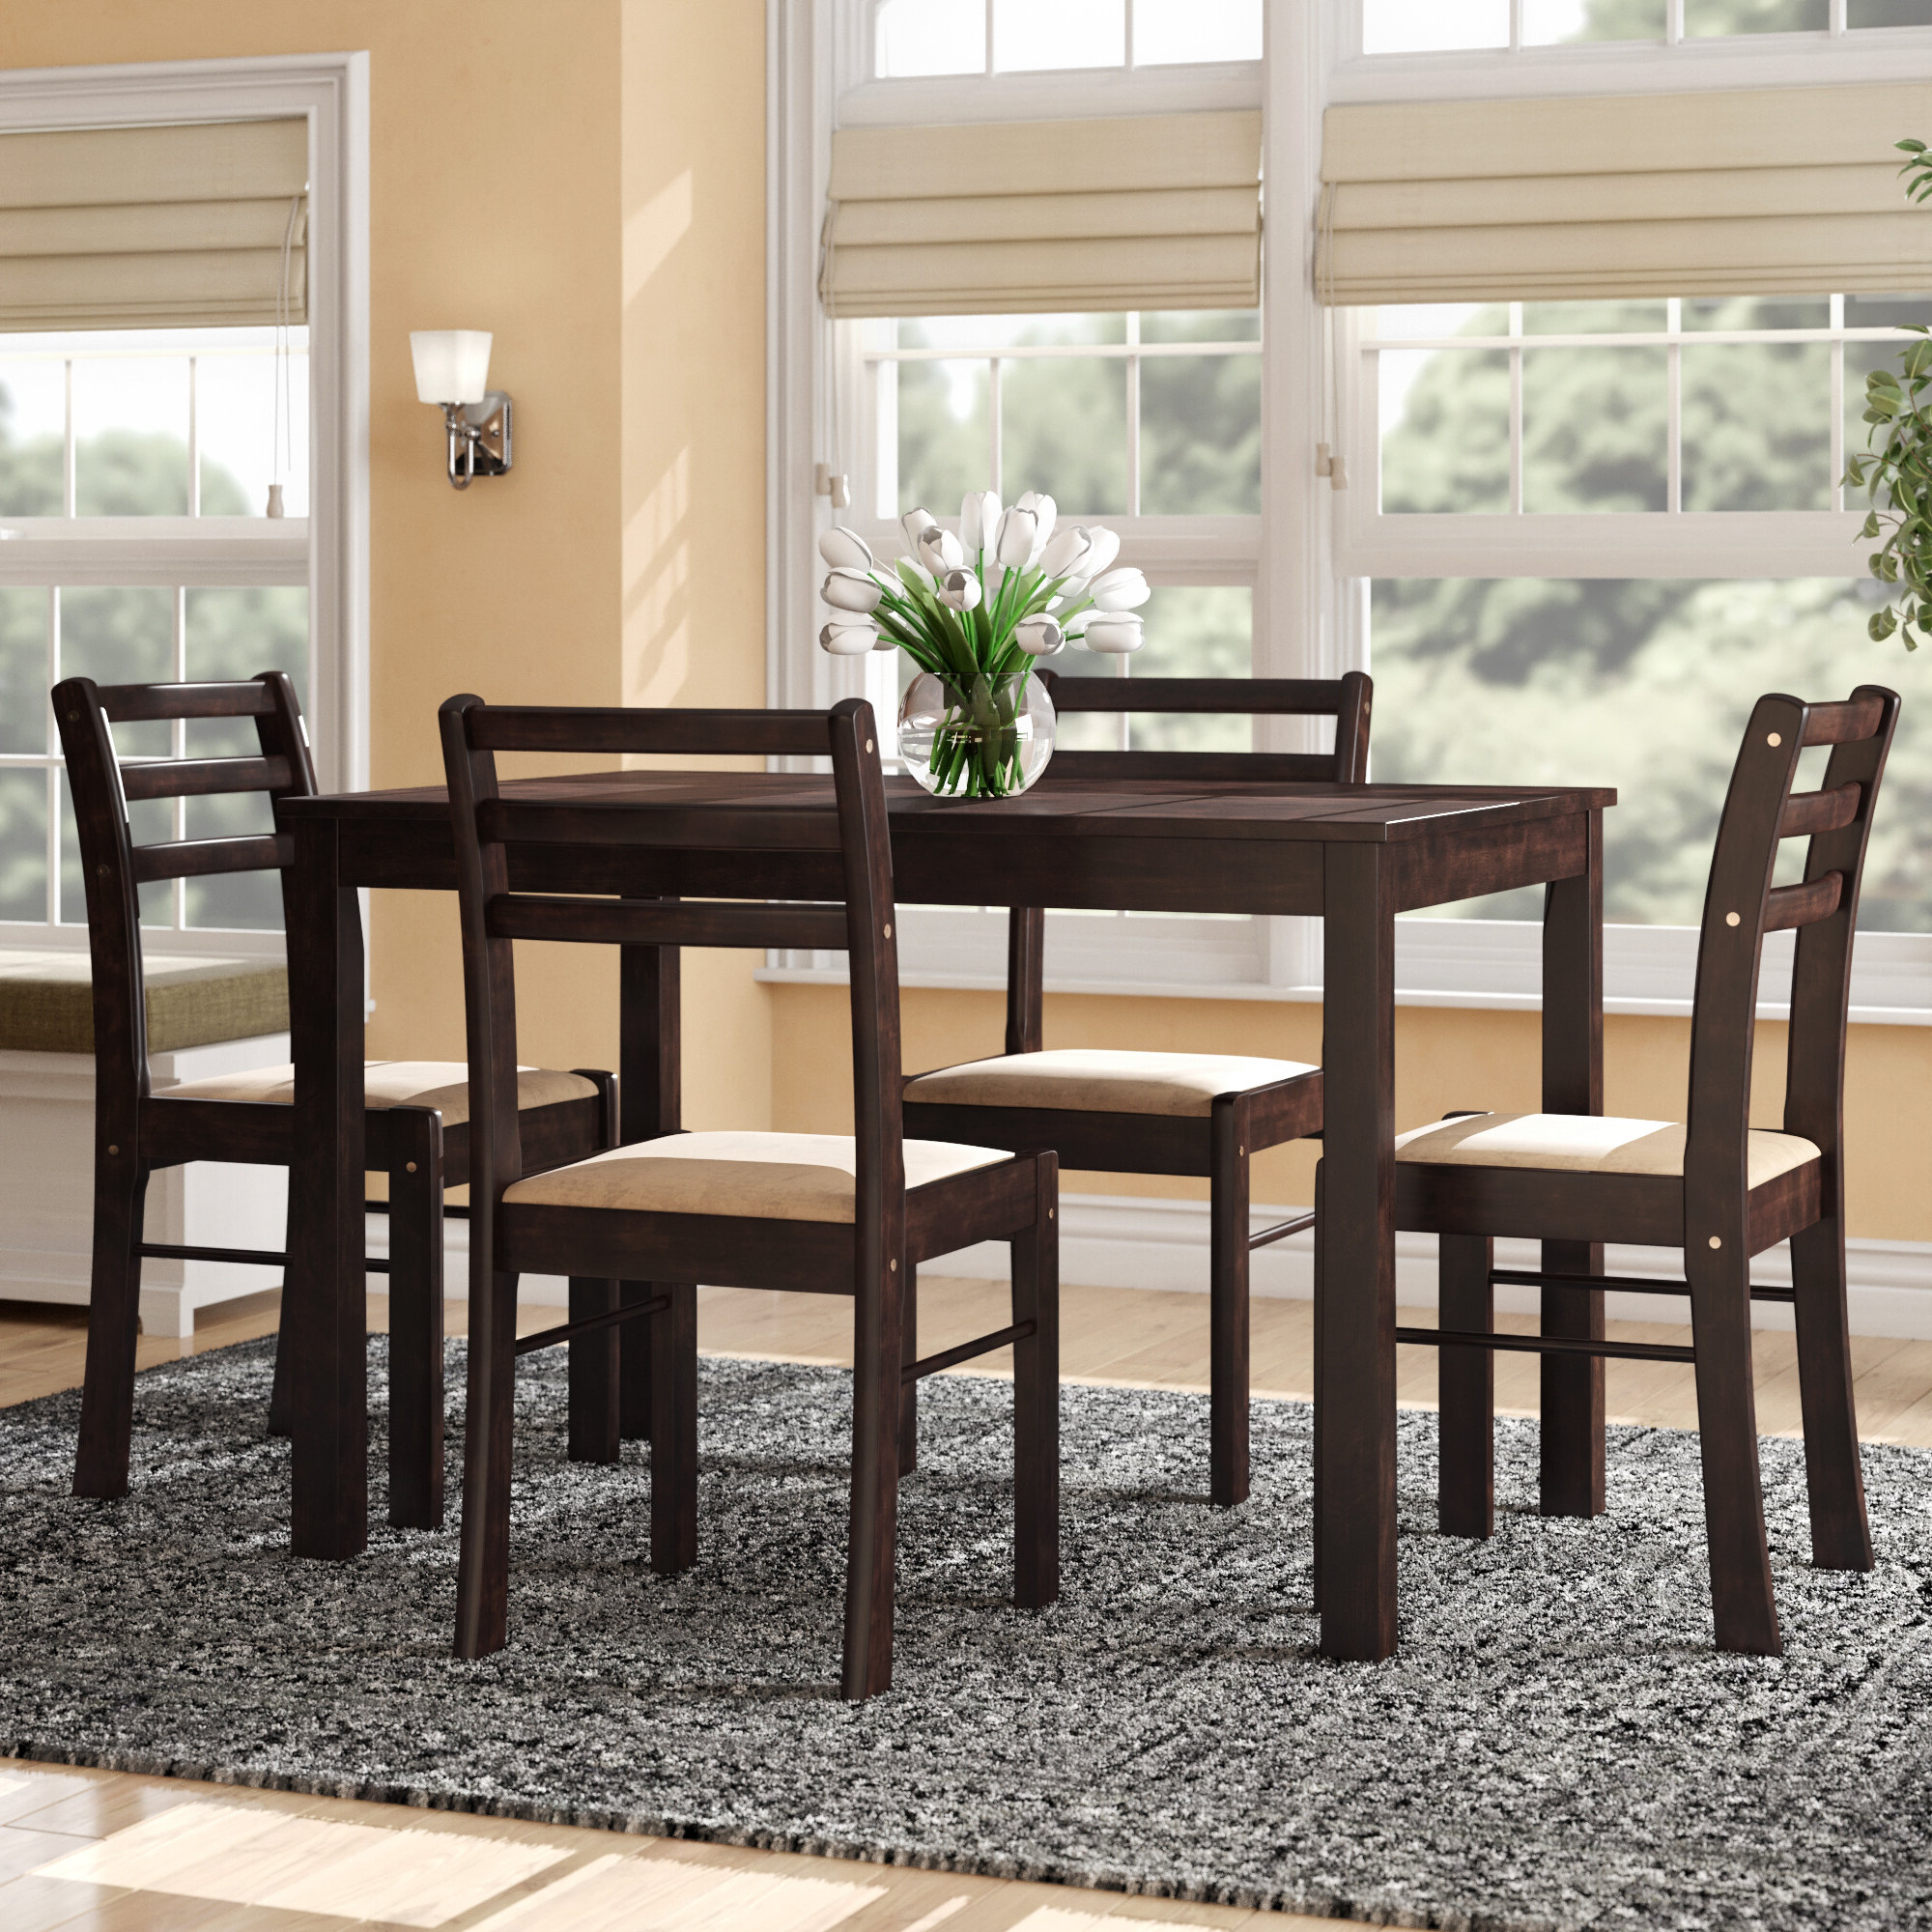 Portal 5 Piece Dining Set Intended For Well Known Ganya 5 Piece Dining Sets (View 14 of 20)